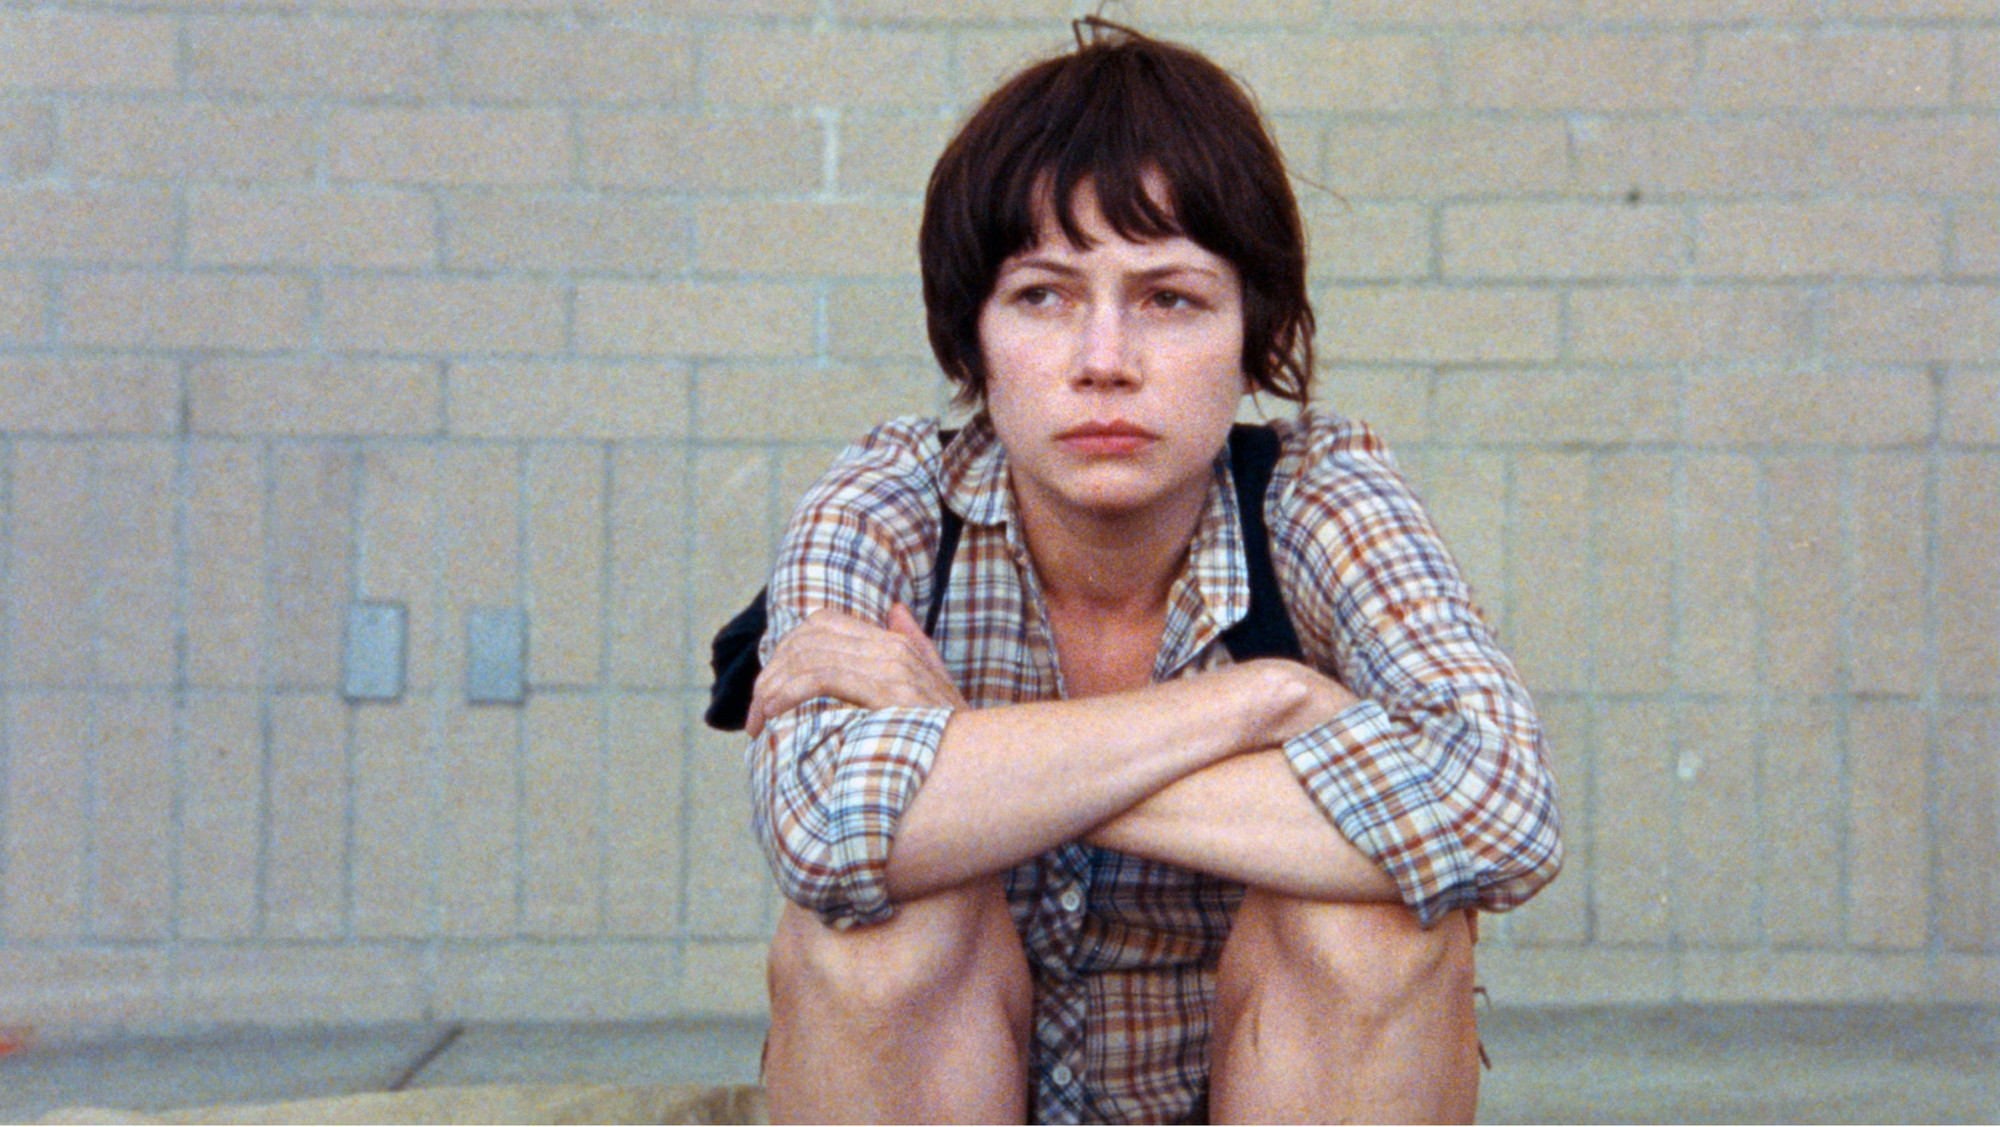 Wendy and Lucy. 2008. USA. Directed by Kelly Reichardt. Courtesy of Oscilloscope Pictures/Photofest. © Oscilloscope Pictures